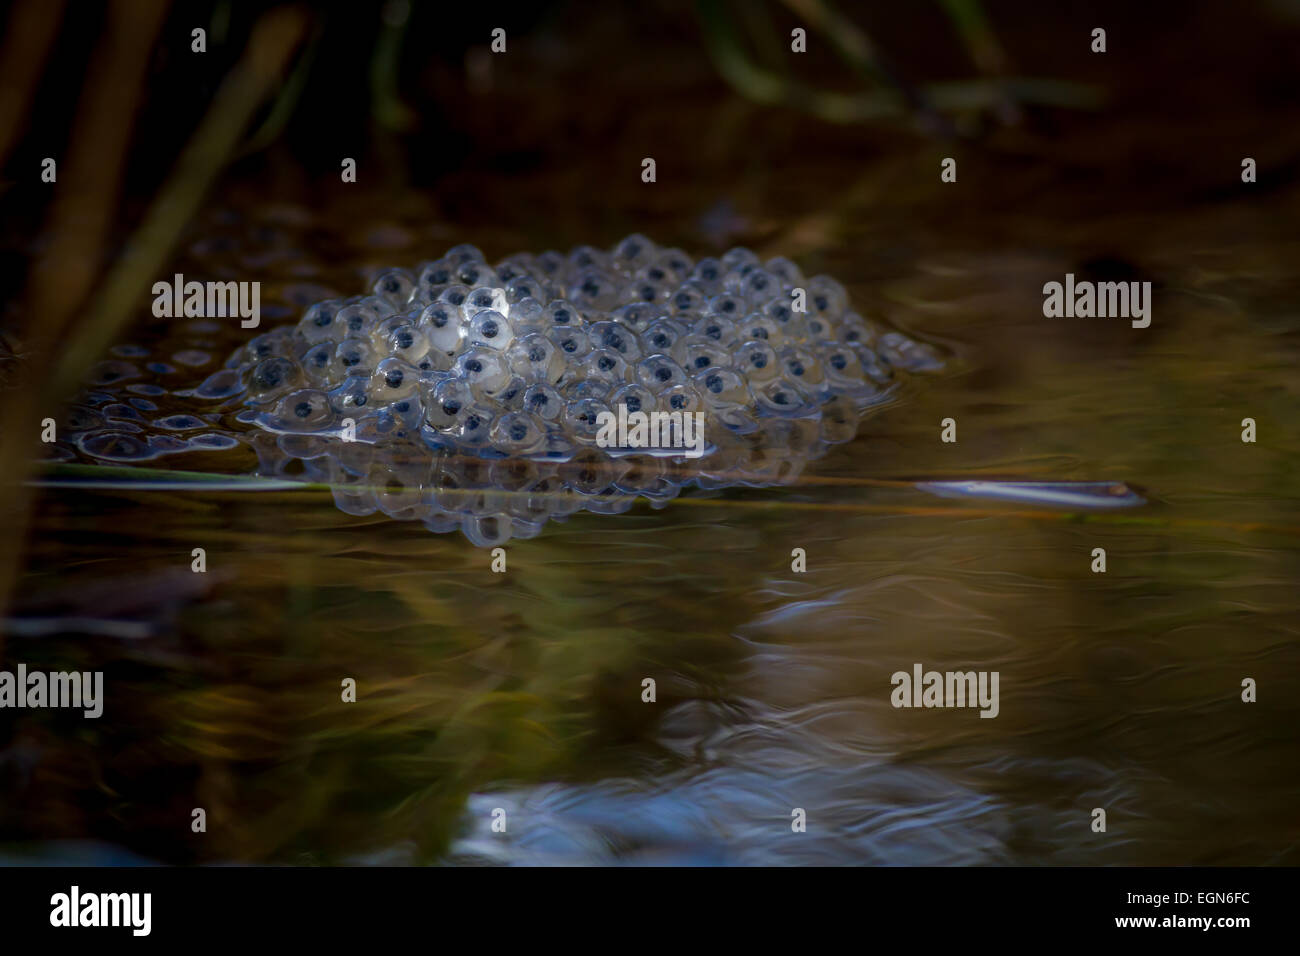 Frog spawn in beautiful light - Stock Image